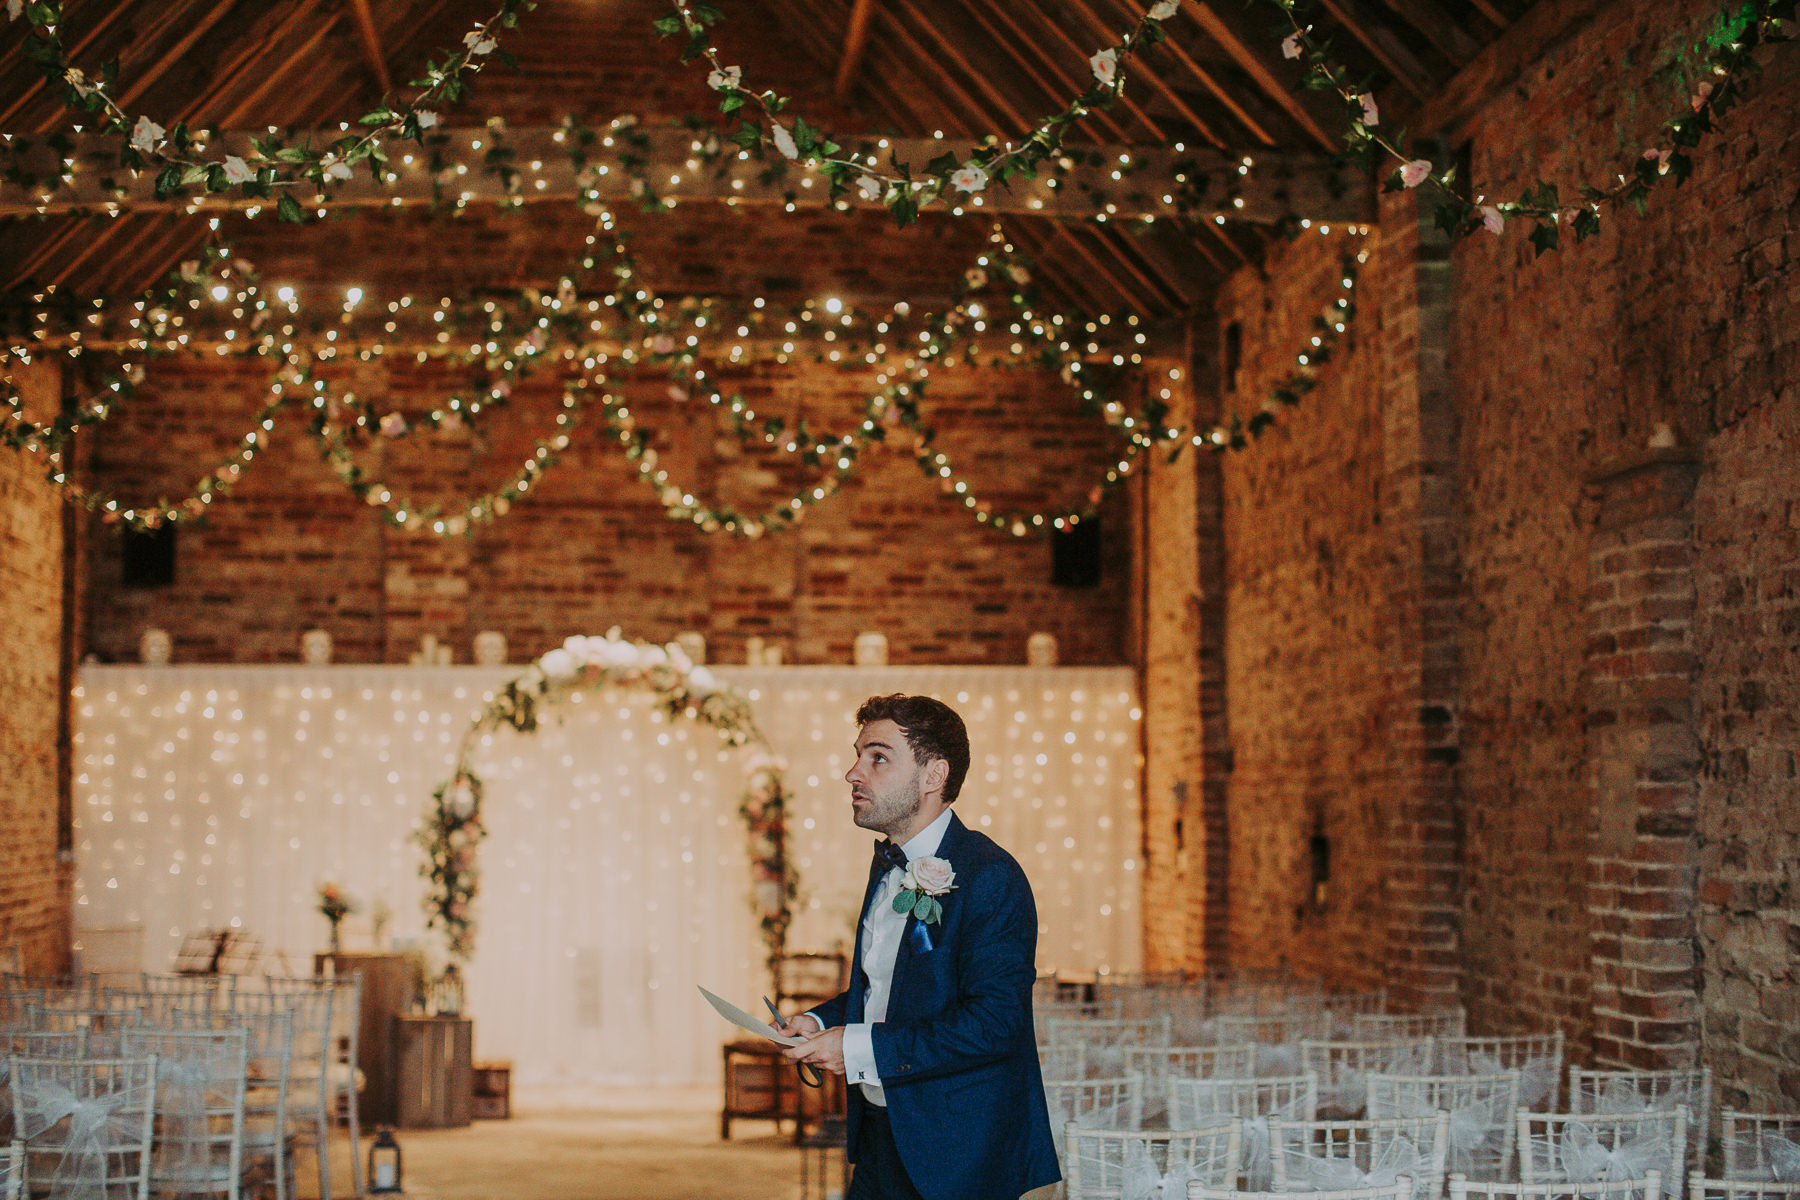 Natalie & Bill | Barmbyfield Barns Wedding 28